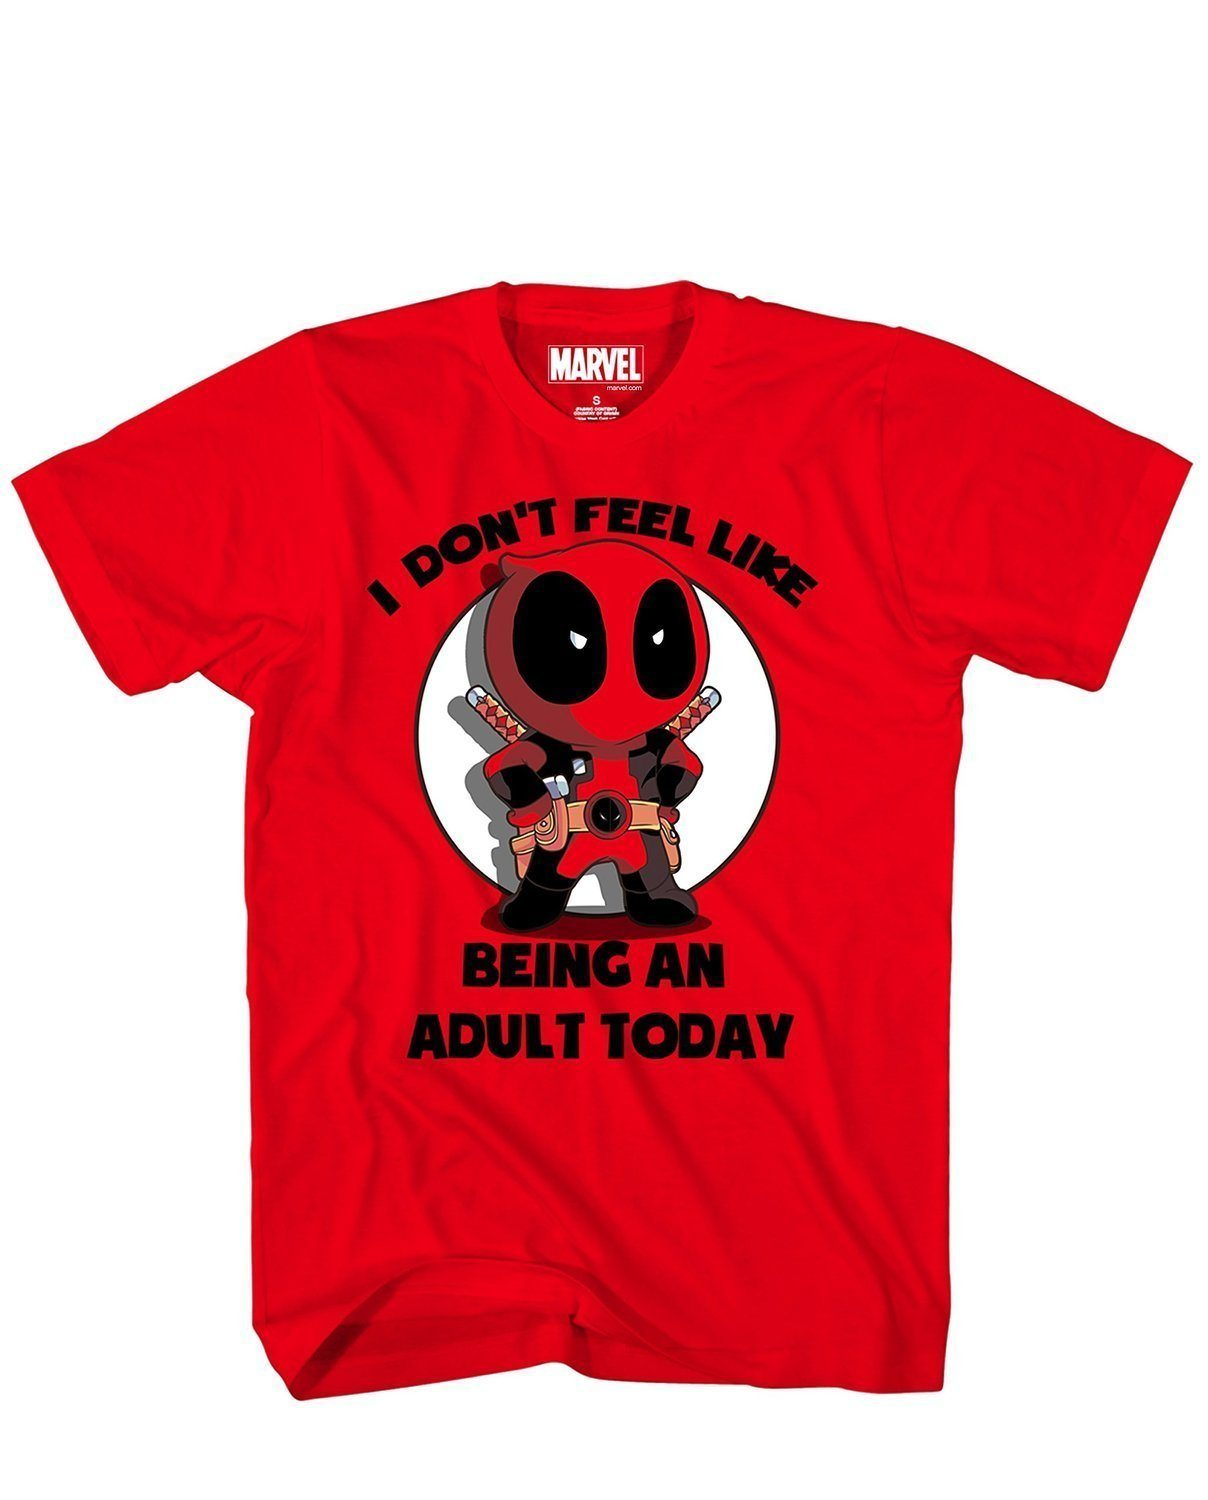 MarvelDeadpool – I Don't Feel Like Being An Adult Today